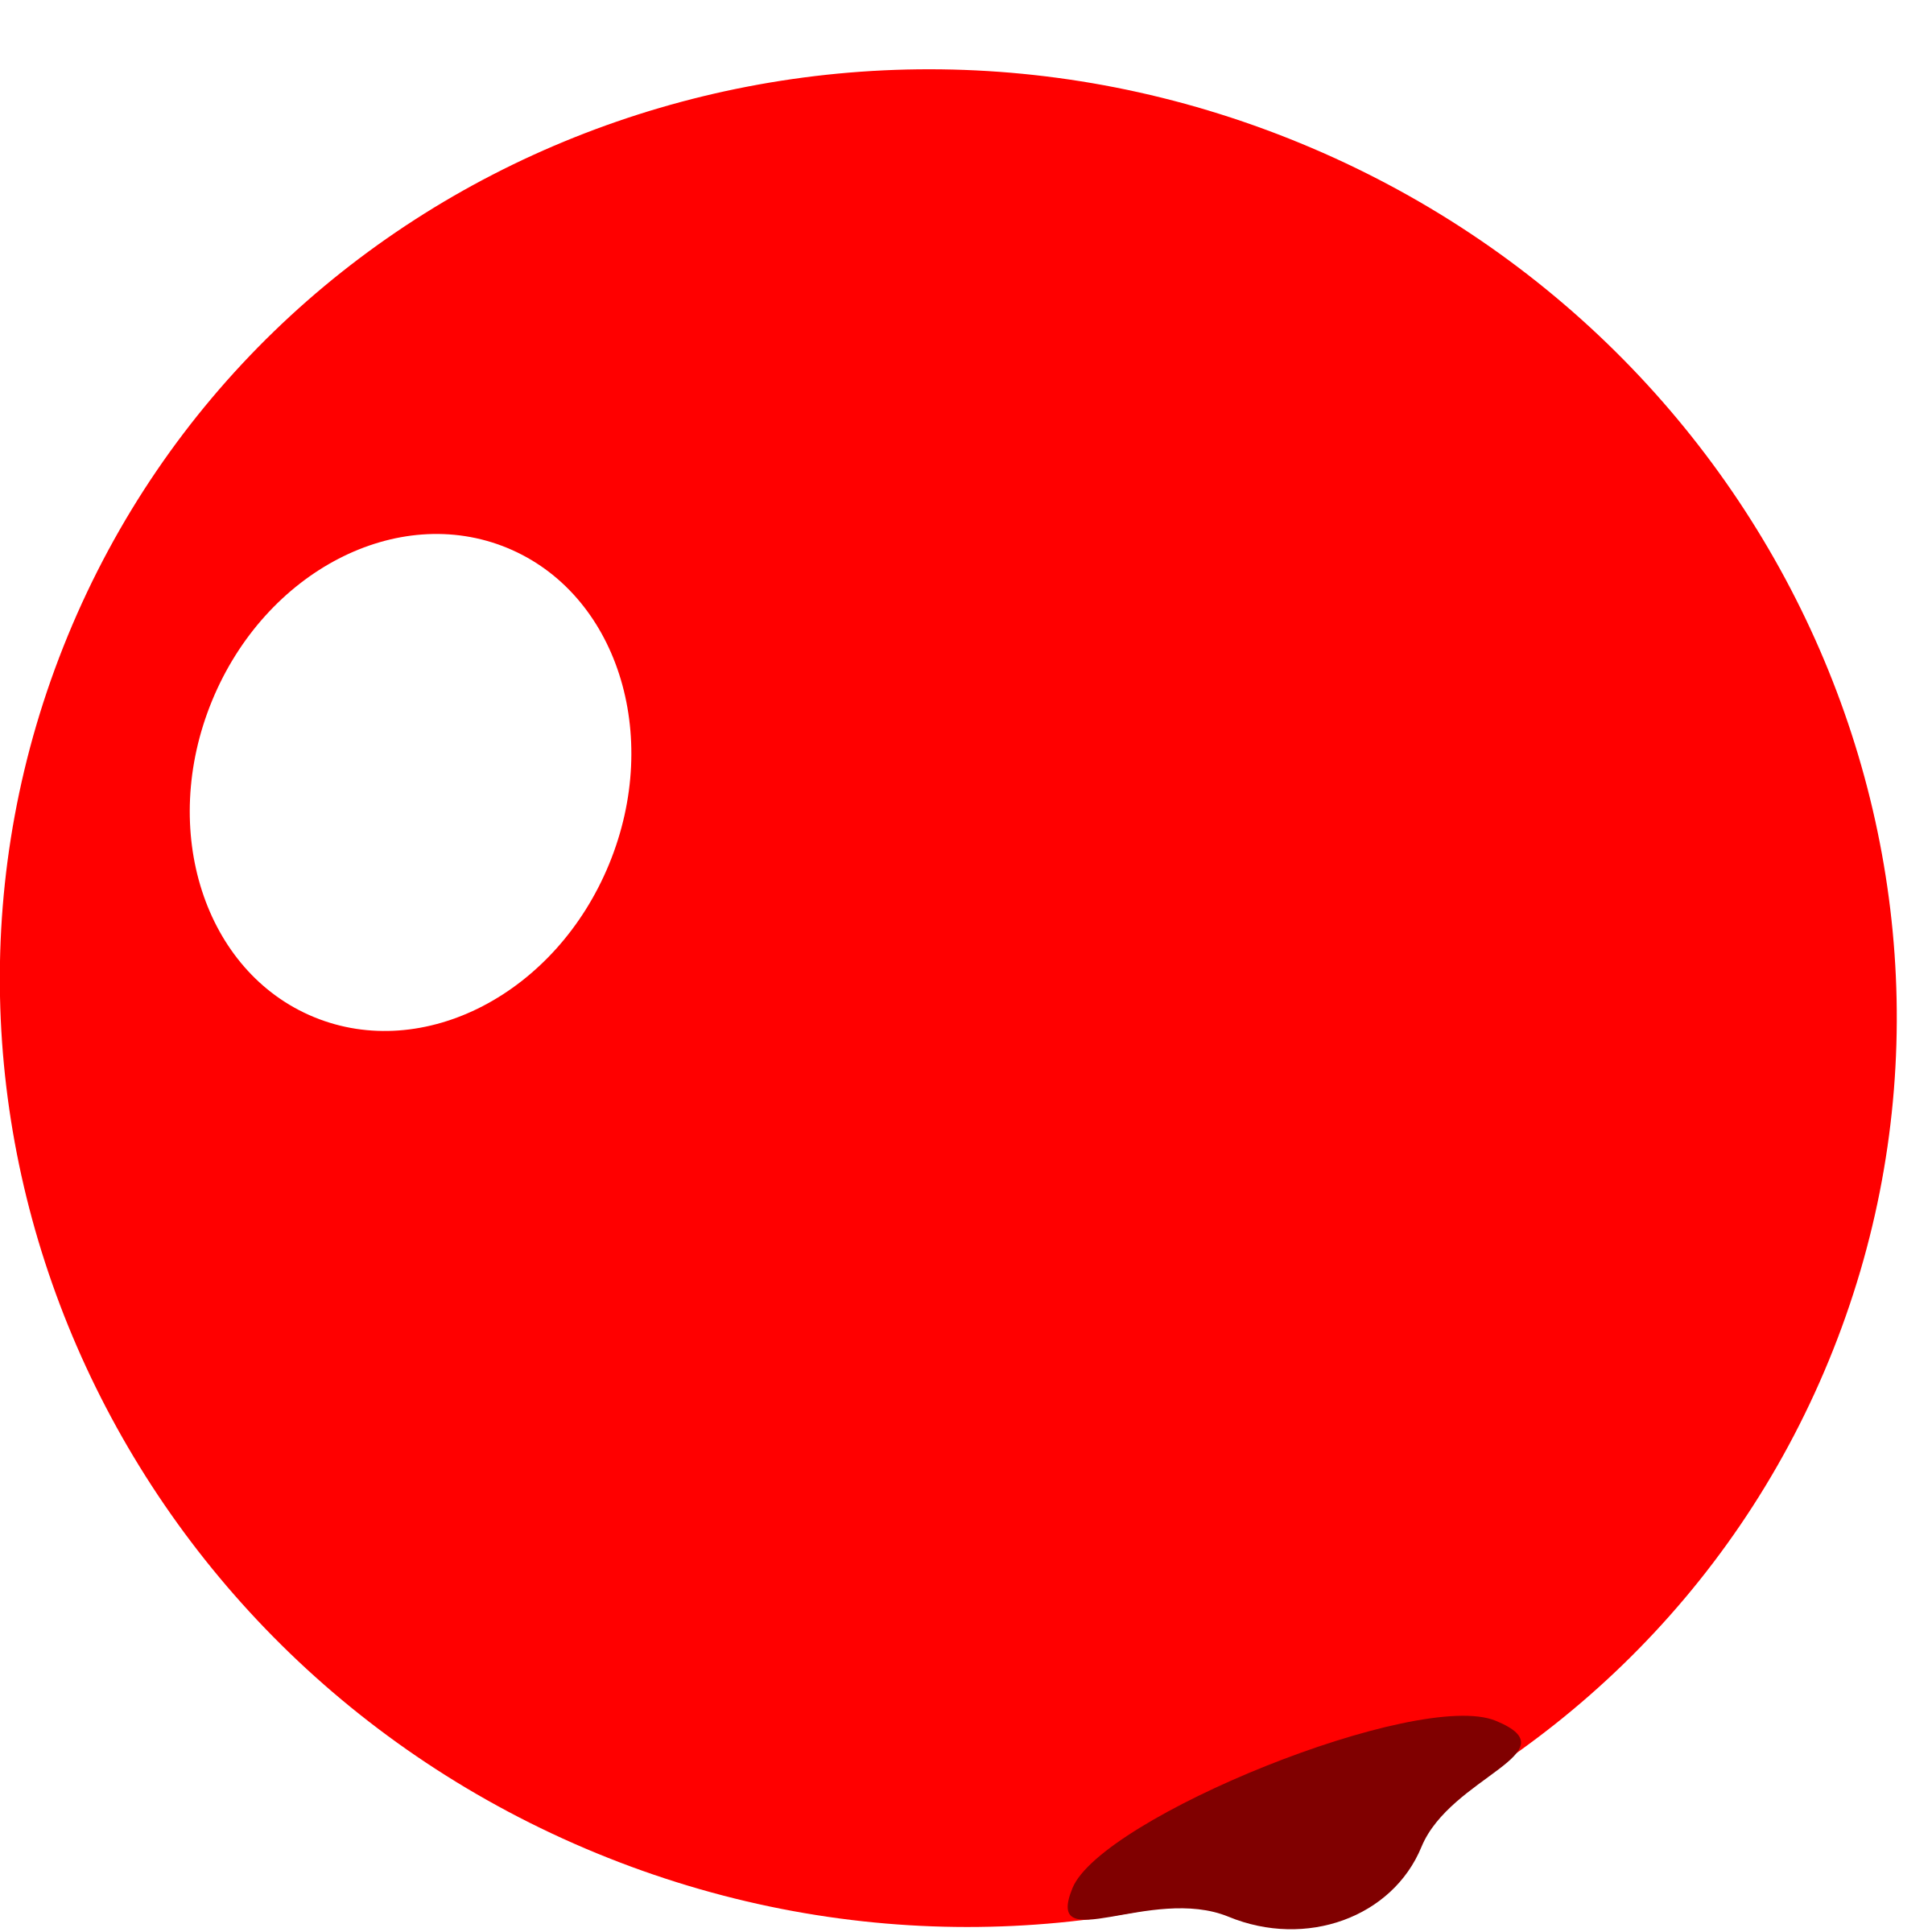 Berry big image. Up clipart png